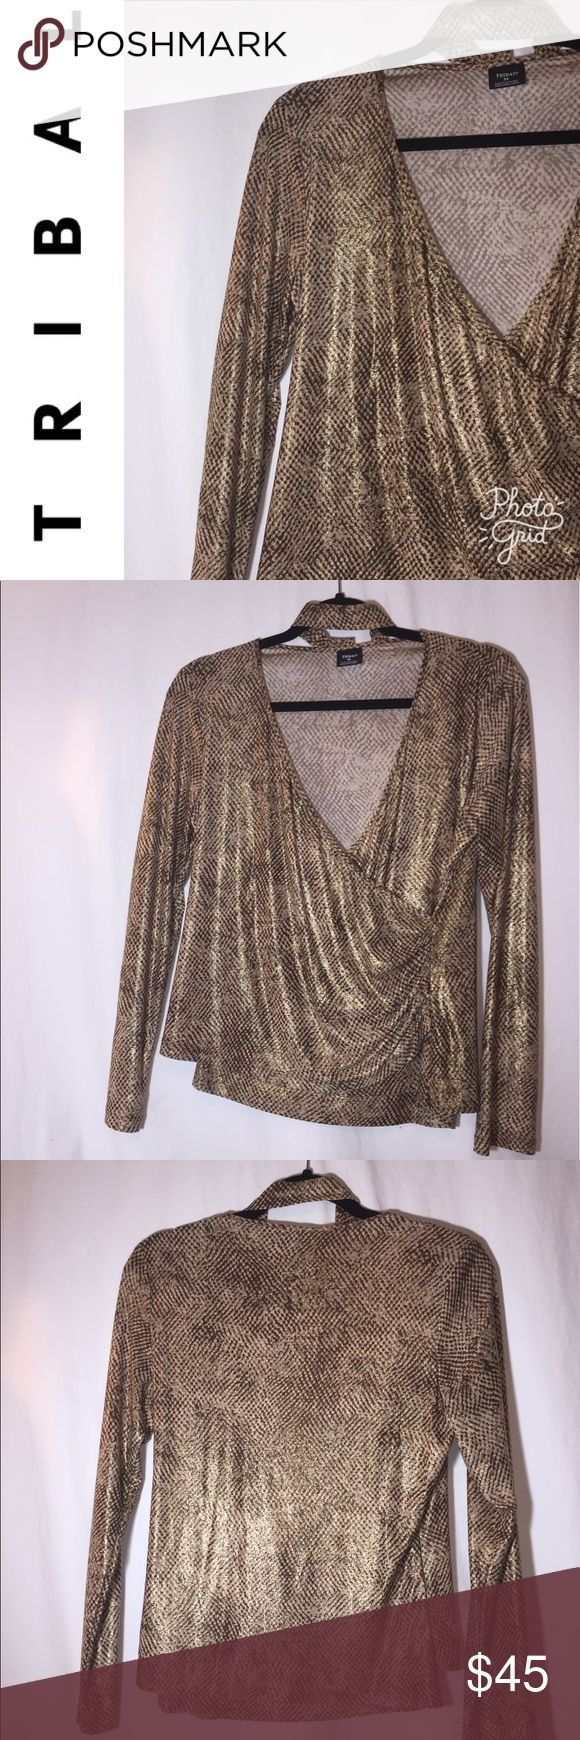 Tribal snake skin top. Size M Tribal snake skin wrap top. Size M. Comes with matching tie. Length 22 inches Sleeve length 24 inches Armpit to armpit 19 inches Tribal Tops Blouses